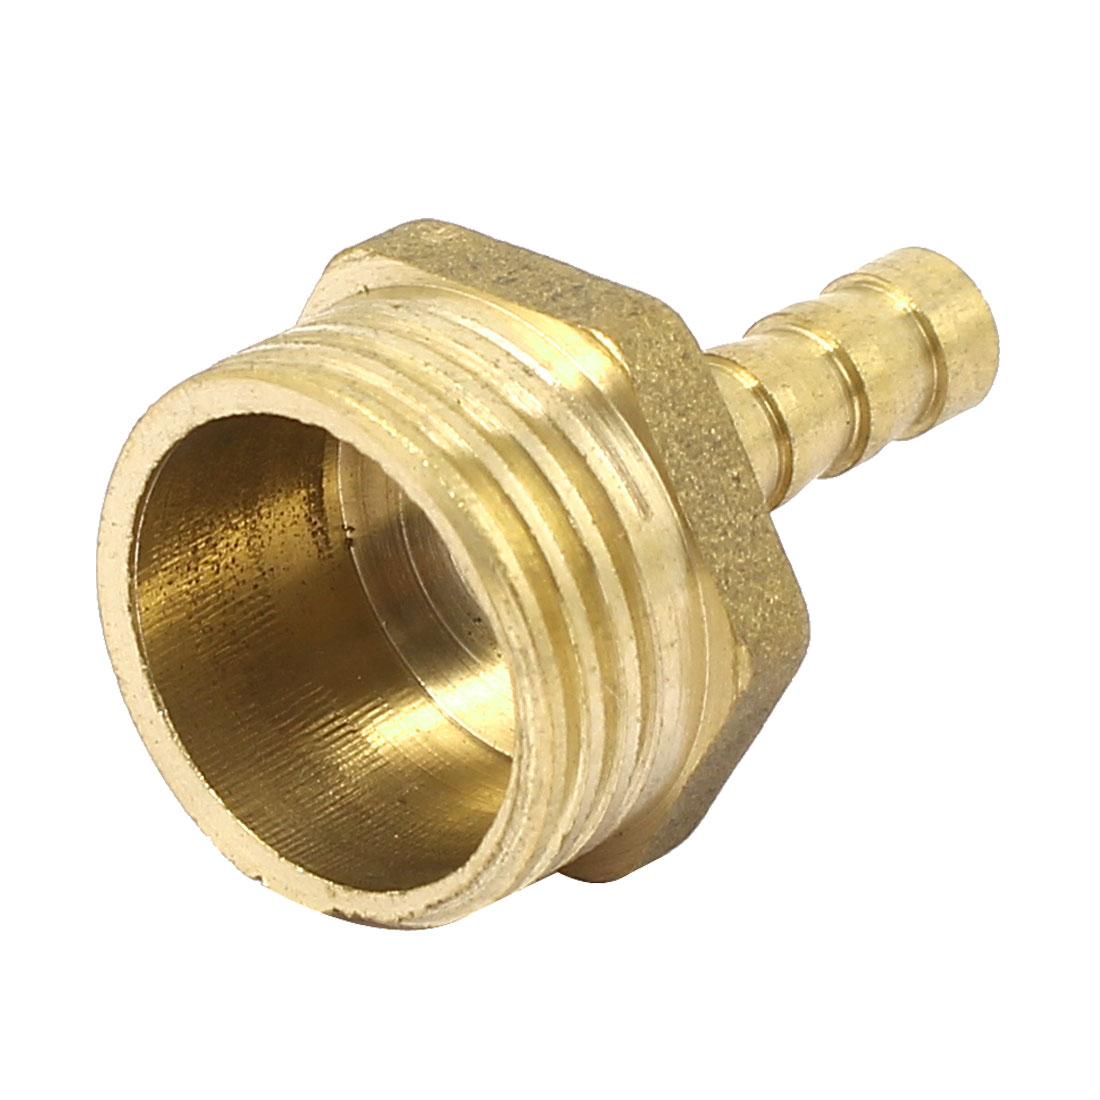 1/2 BSP Male Thread 6mm Barb Hose Tubing Fitting Connector Adapter Gold Tone